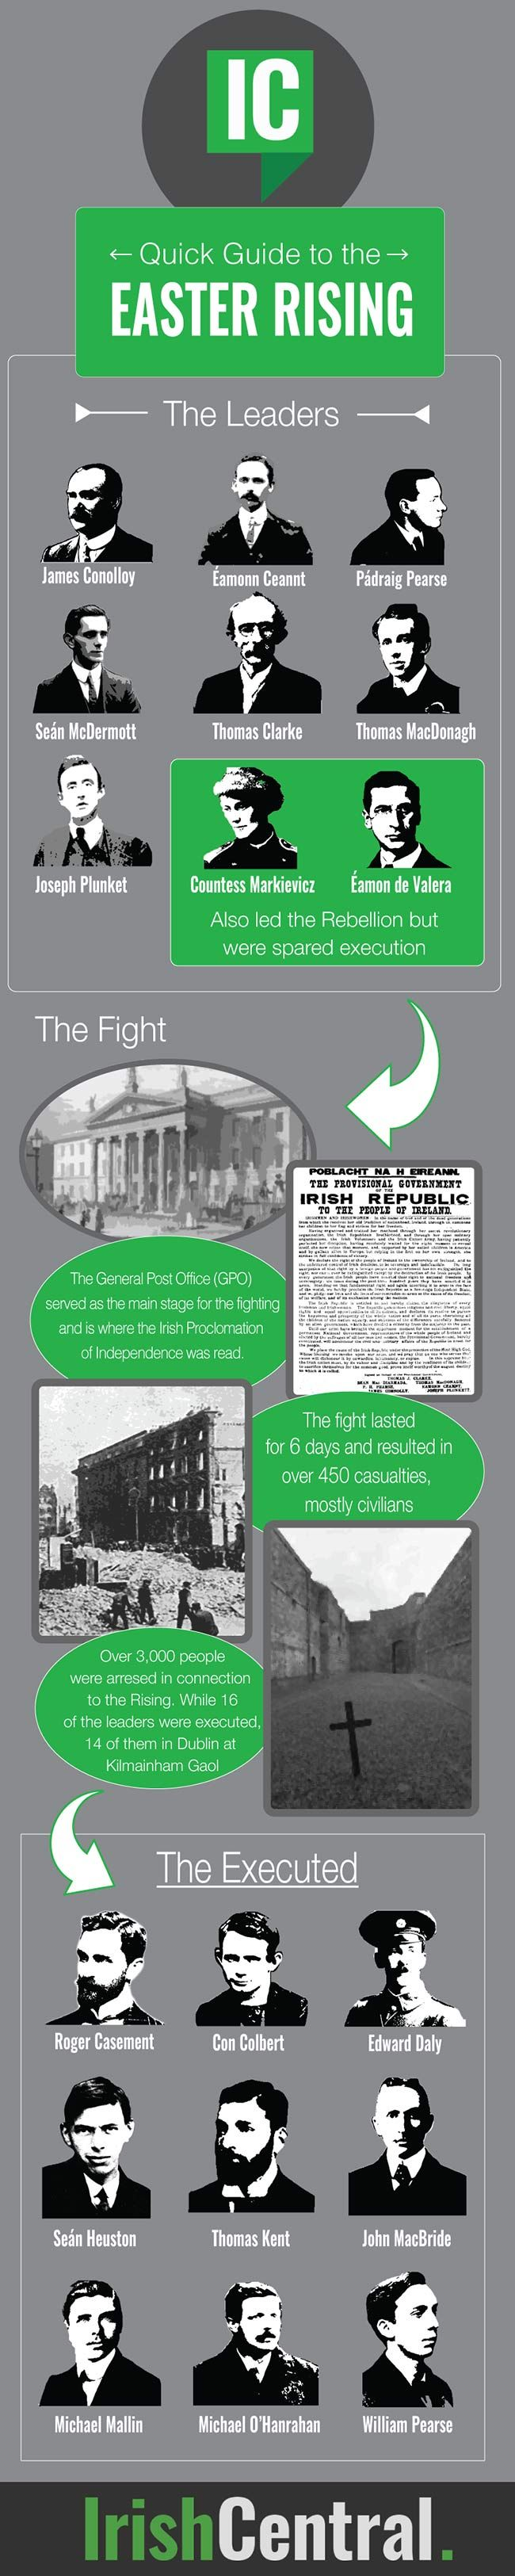 Not totally clear on all the details of the 1916 Easter Rising? In honor of the upcoming centenary, here's an infographic to help.